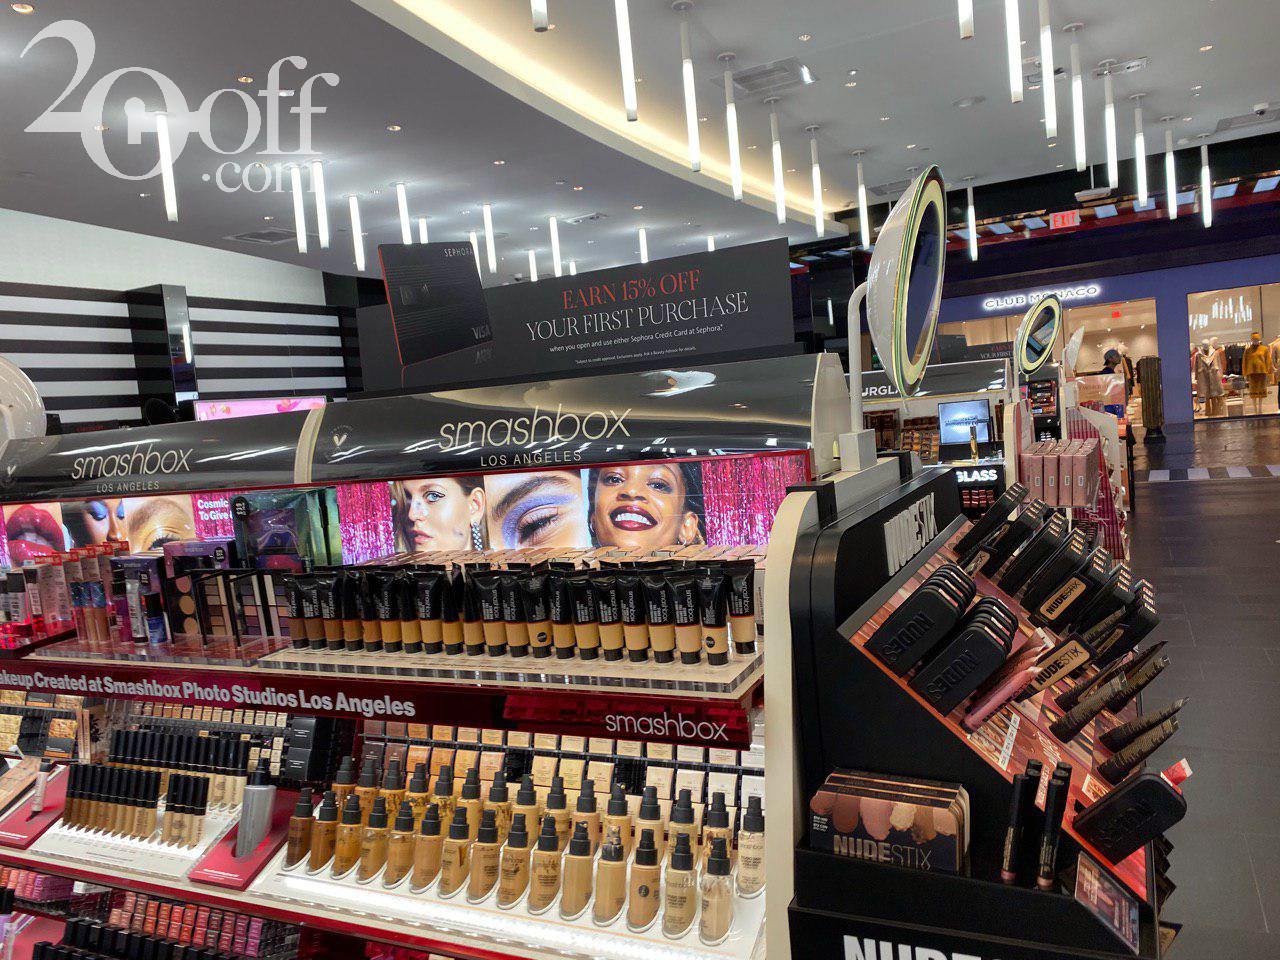 Sephora Smashbox Deals